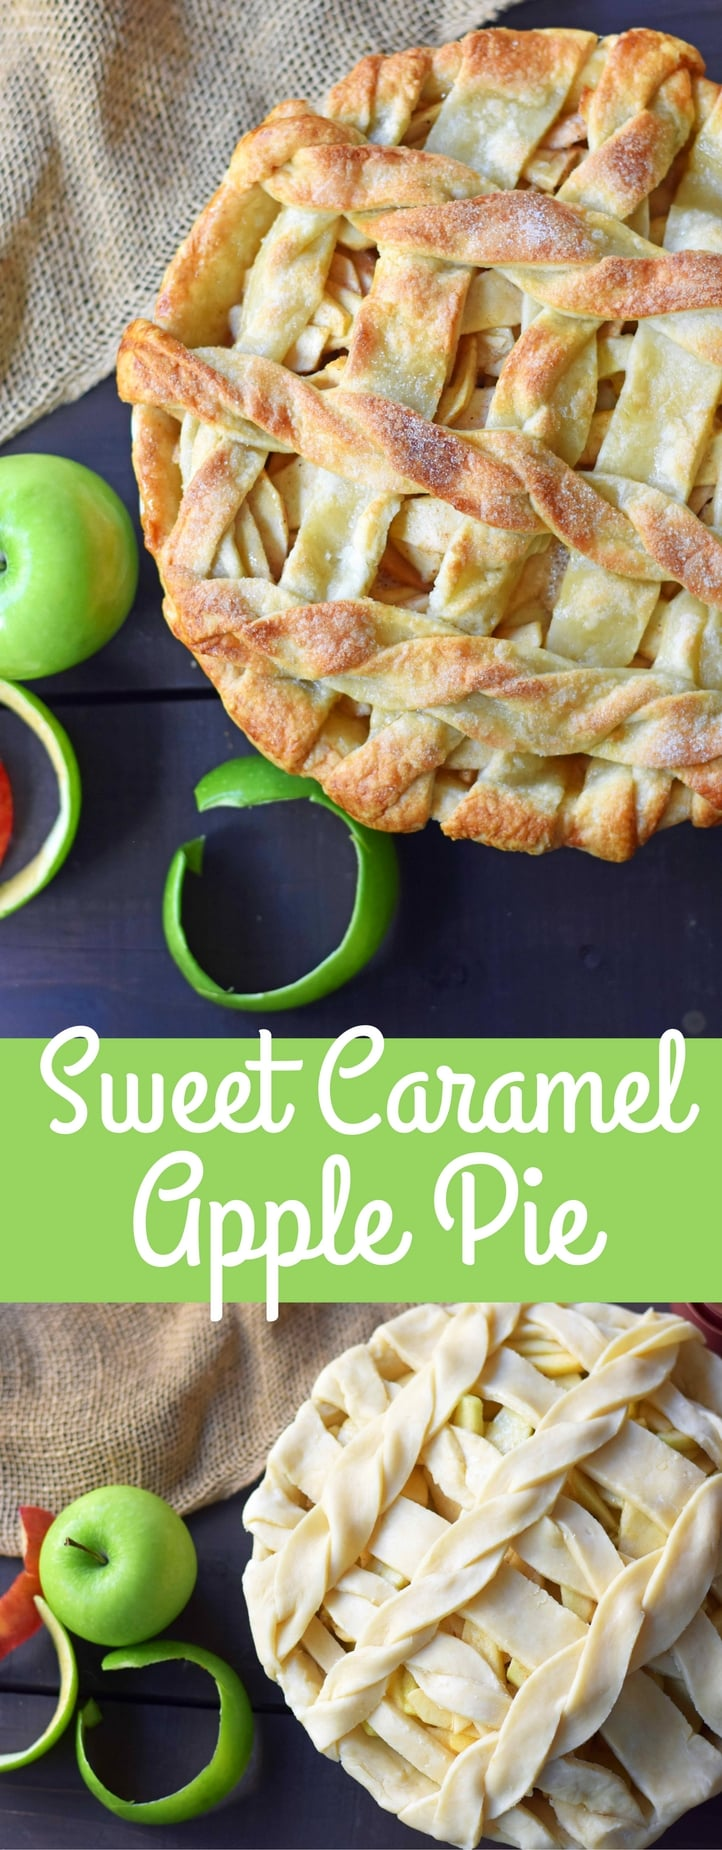 Caramel Apple Pie is a made with sweet and crisp apples sauteed in brown sugar and drizzled with homemade caramel sauce, all in a buttery flaky pie crust. The BEST Apple Pie Recipe drizzled with salted caramel sauce. www.modernhoney.com